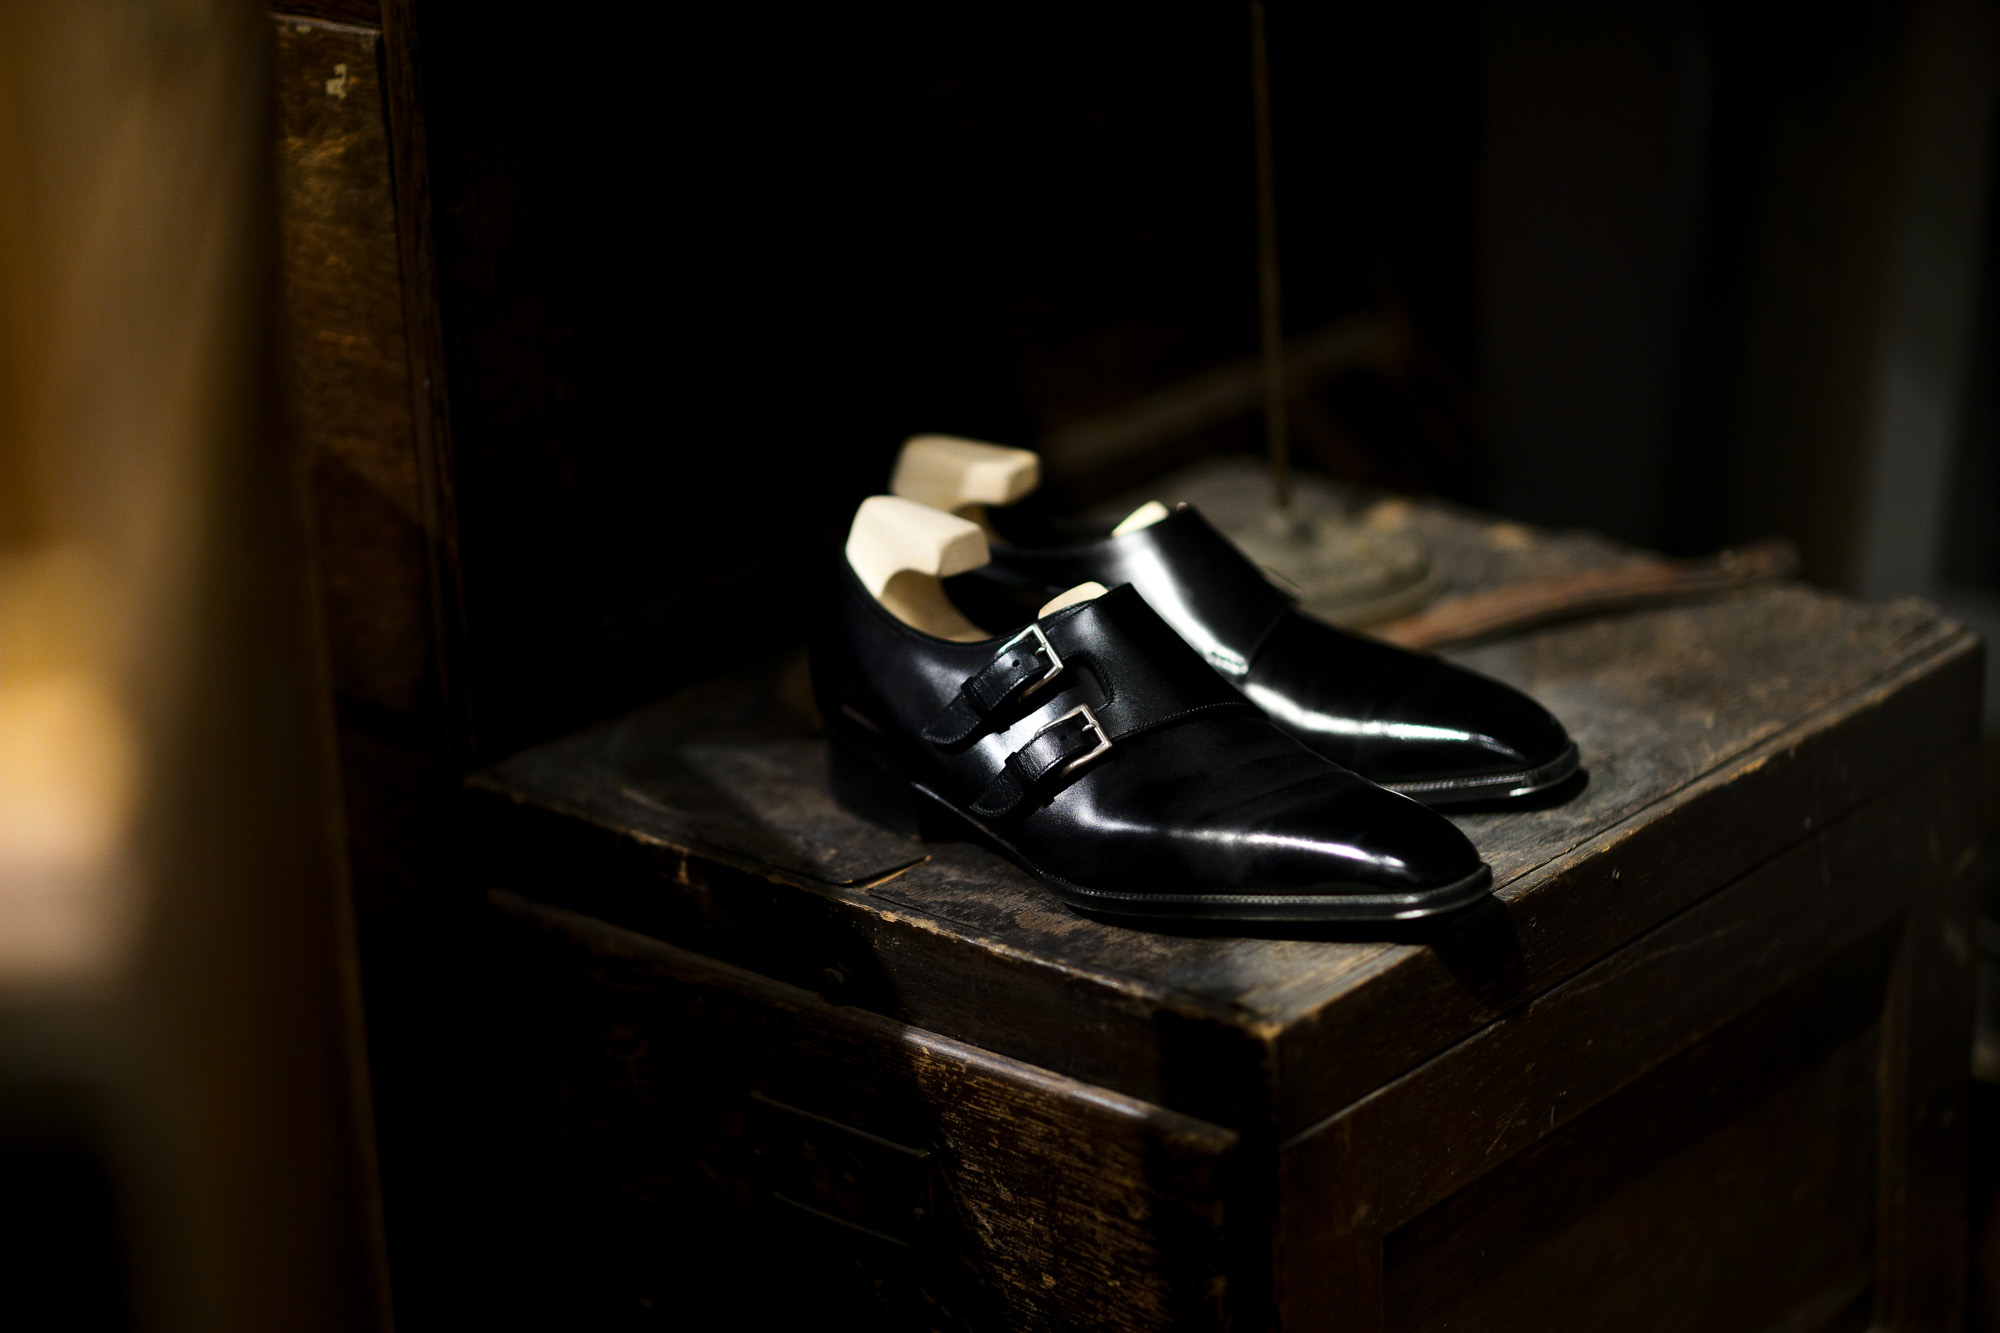 Yohei Fukuda // Double Monk Strap Shoes BLACK 【Bespoke】ヨーヘイフクダ 福田洋平 ビスポークシューズ オーダー会 受注会 名古屋 受注会開催 オーダー会開催 ダブルモンクストラップシューズ ドレスシューズ ブラック 仮縫い 完成 福田洋平 Yohei Fukuda 東京都港区北青山2-12-27 BAL青山2F 既製靴 ビスポークシューズ ビスポーク 受注会 オーダー会 ダブルモンク テディベア Yohei Fukuda learned shoemaking in Northamptonshire, the traditional home of English shoemaking, followed by a local apprenticeship and then work for several years for London firms.After returning to Japan he founded Yohei Fukuda in Tokyo in 2008. Since its founding the workshop has grown and now has 4 additional craftsmen, each driven by the same passion for shoemaking and dedication to quality for which Yohei Fukuda shoes are known.At Yohei Fukuda the aim is to create classically styled shoes of the highest quality that will be of value to their owners for many years. By using the finest materials and time-tested techniques of traditional bespoke shoemaking, we hope to make shoes of timeless elegance.名だたるビスポーク・シューメーカーで靴作りを手がけてきた福田洋平が2008年に設立した「Yohei Fukuda」の公式オンラインショップ。伝統的な英国靴の仕立てを継承しつつ、ミリ単位にまでこだわる日本人ならではの感性で、モダン